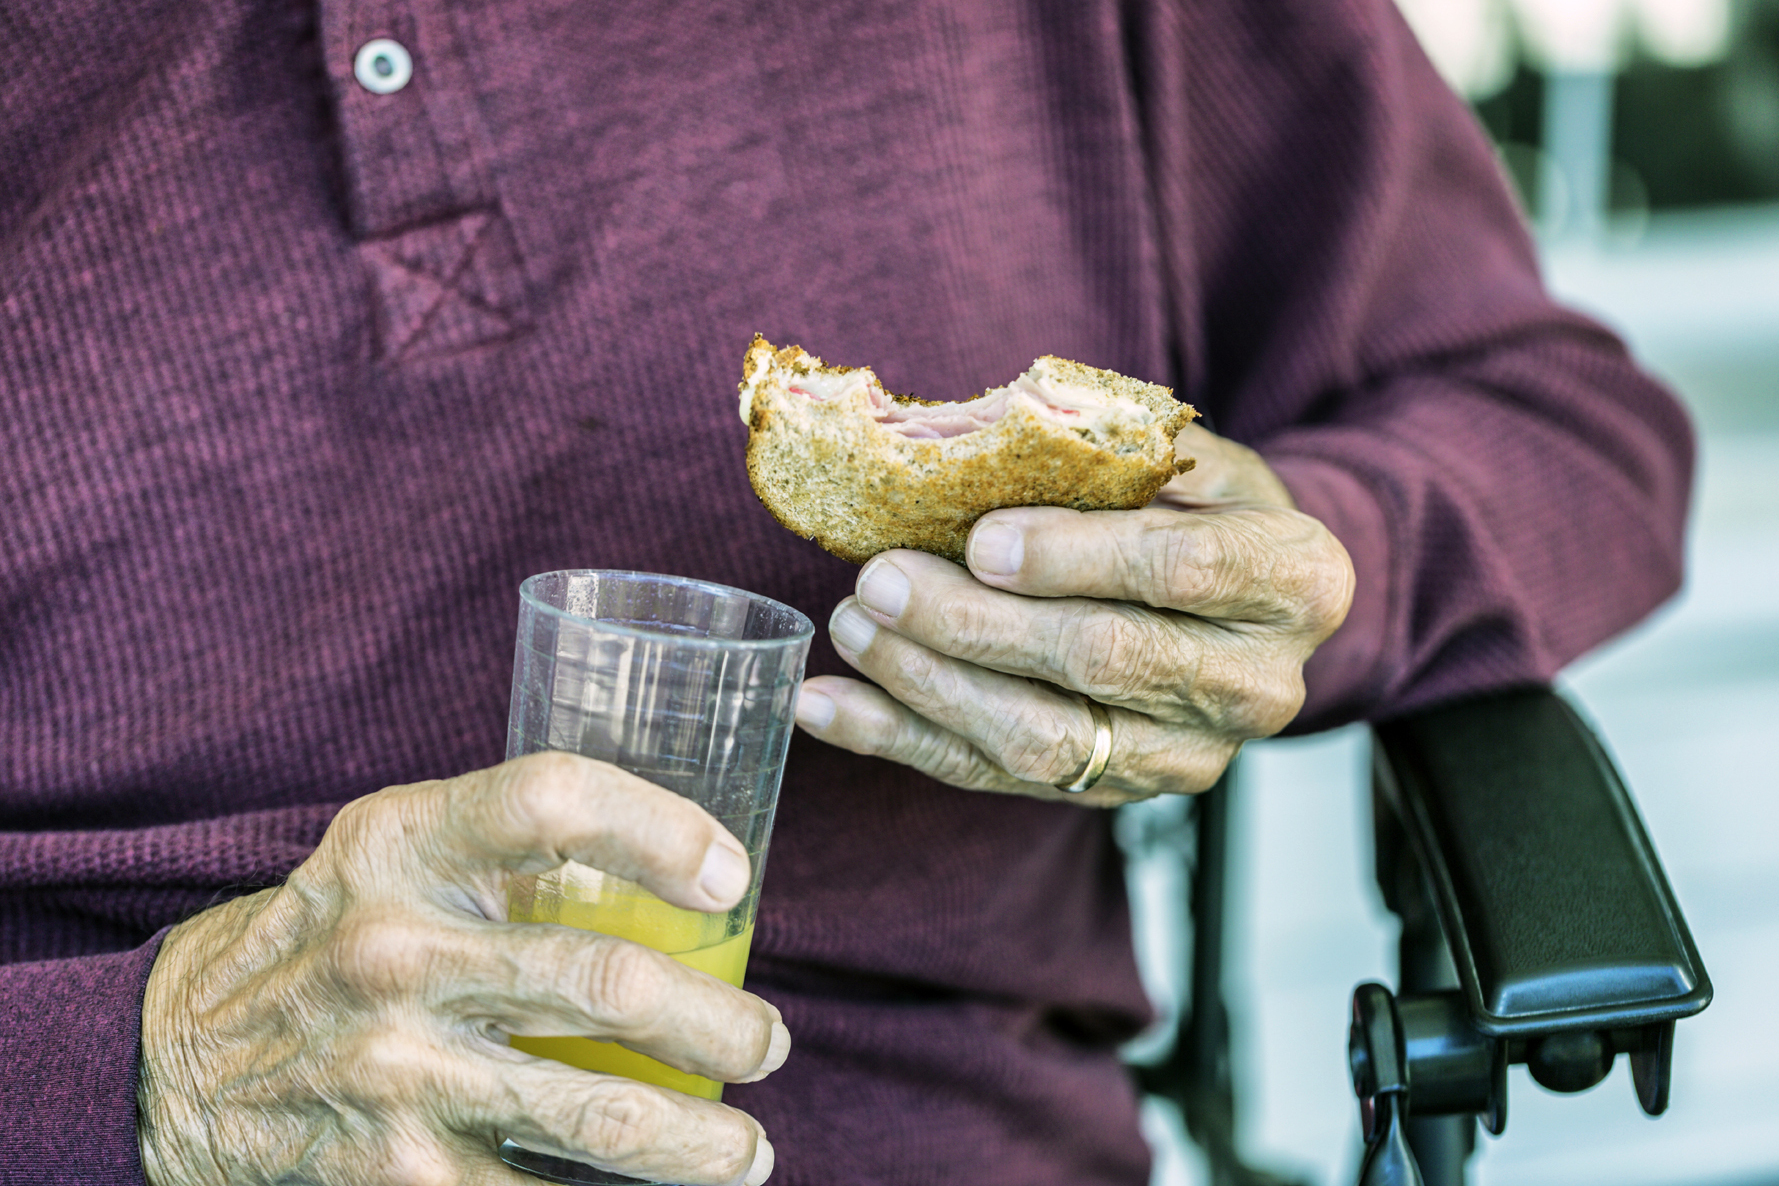 Malnourished seniors may be forgotten until they show up in the emergency room, often for another reason like an injury. Photo: Ted Gough/Willowpix/iStockphoto